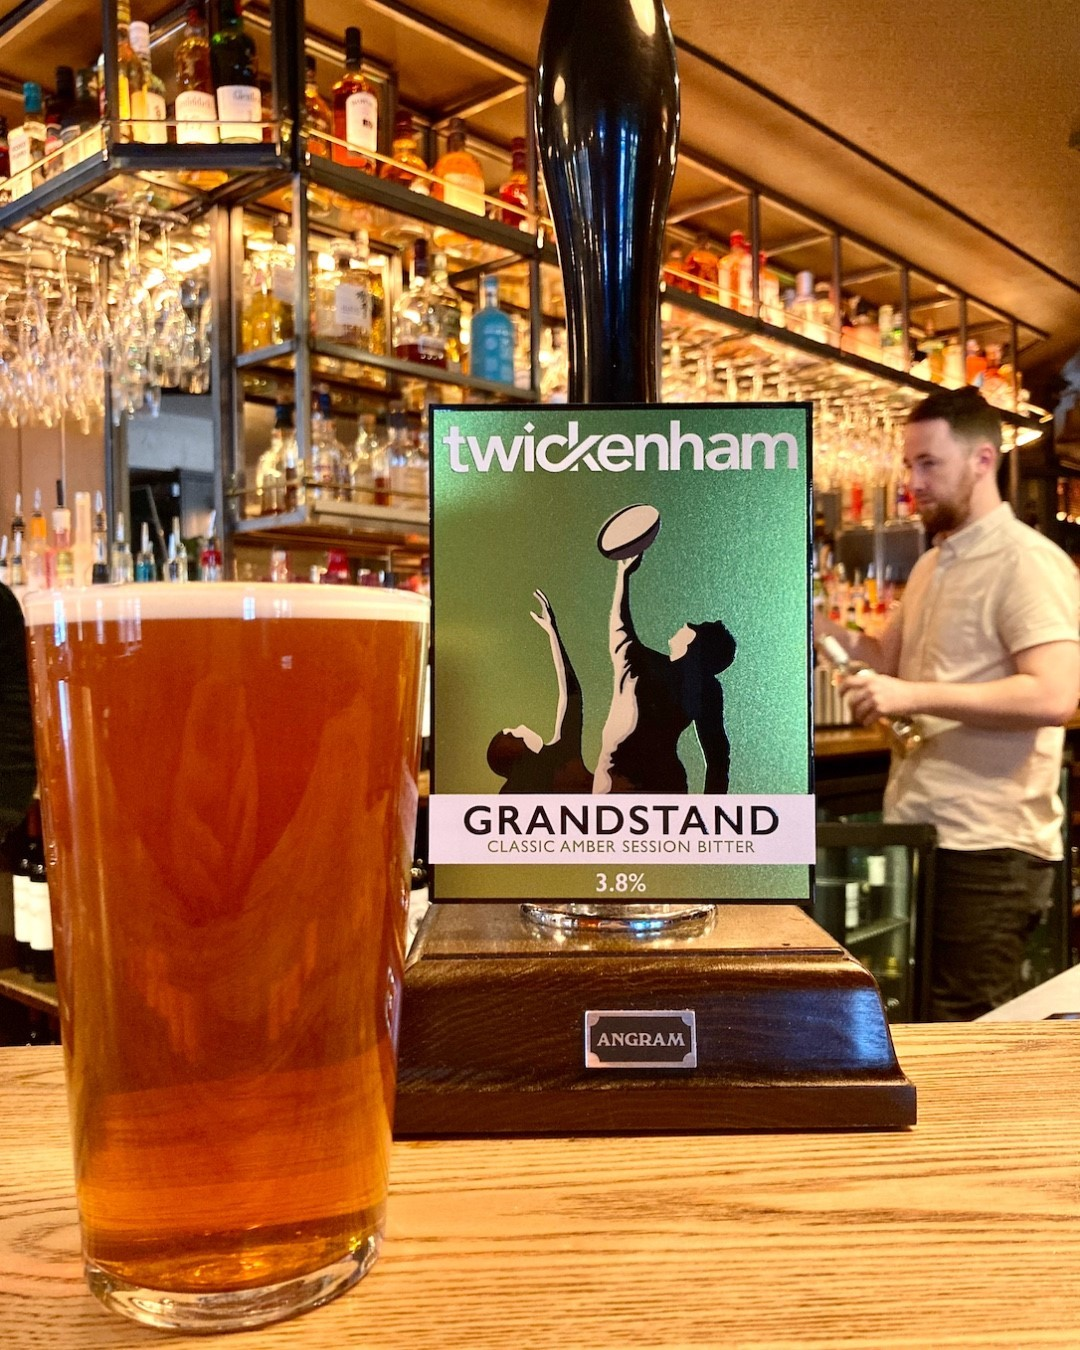 HAPPY SATURDAY HIGHGATE!  Have you tried our new English bitter? Grandstand by Twickenham Fine Ales has light citrus hoppy notes and fresh clean finish make it really thirst quenching. The one beer to have when you're having more than one!  We're very excited about more live Jazz tomorrow night! 🎶 Only a few tables left, give us a ring to reserve your spot for the perfect sunday evening!   #hoppy #ale #beer #jazz #music #jazzmusic #hiphop #dance #guitar #blues #soul #funk #musician #rock #vinyl #piano #livemusic #northlondon #highgate #hampstead